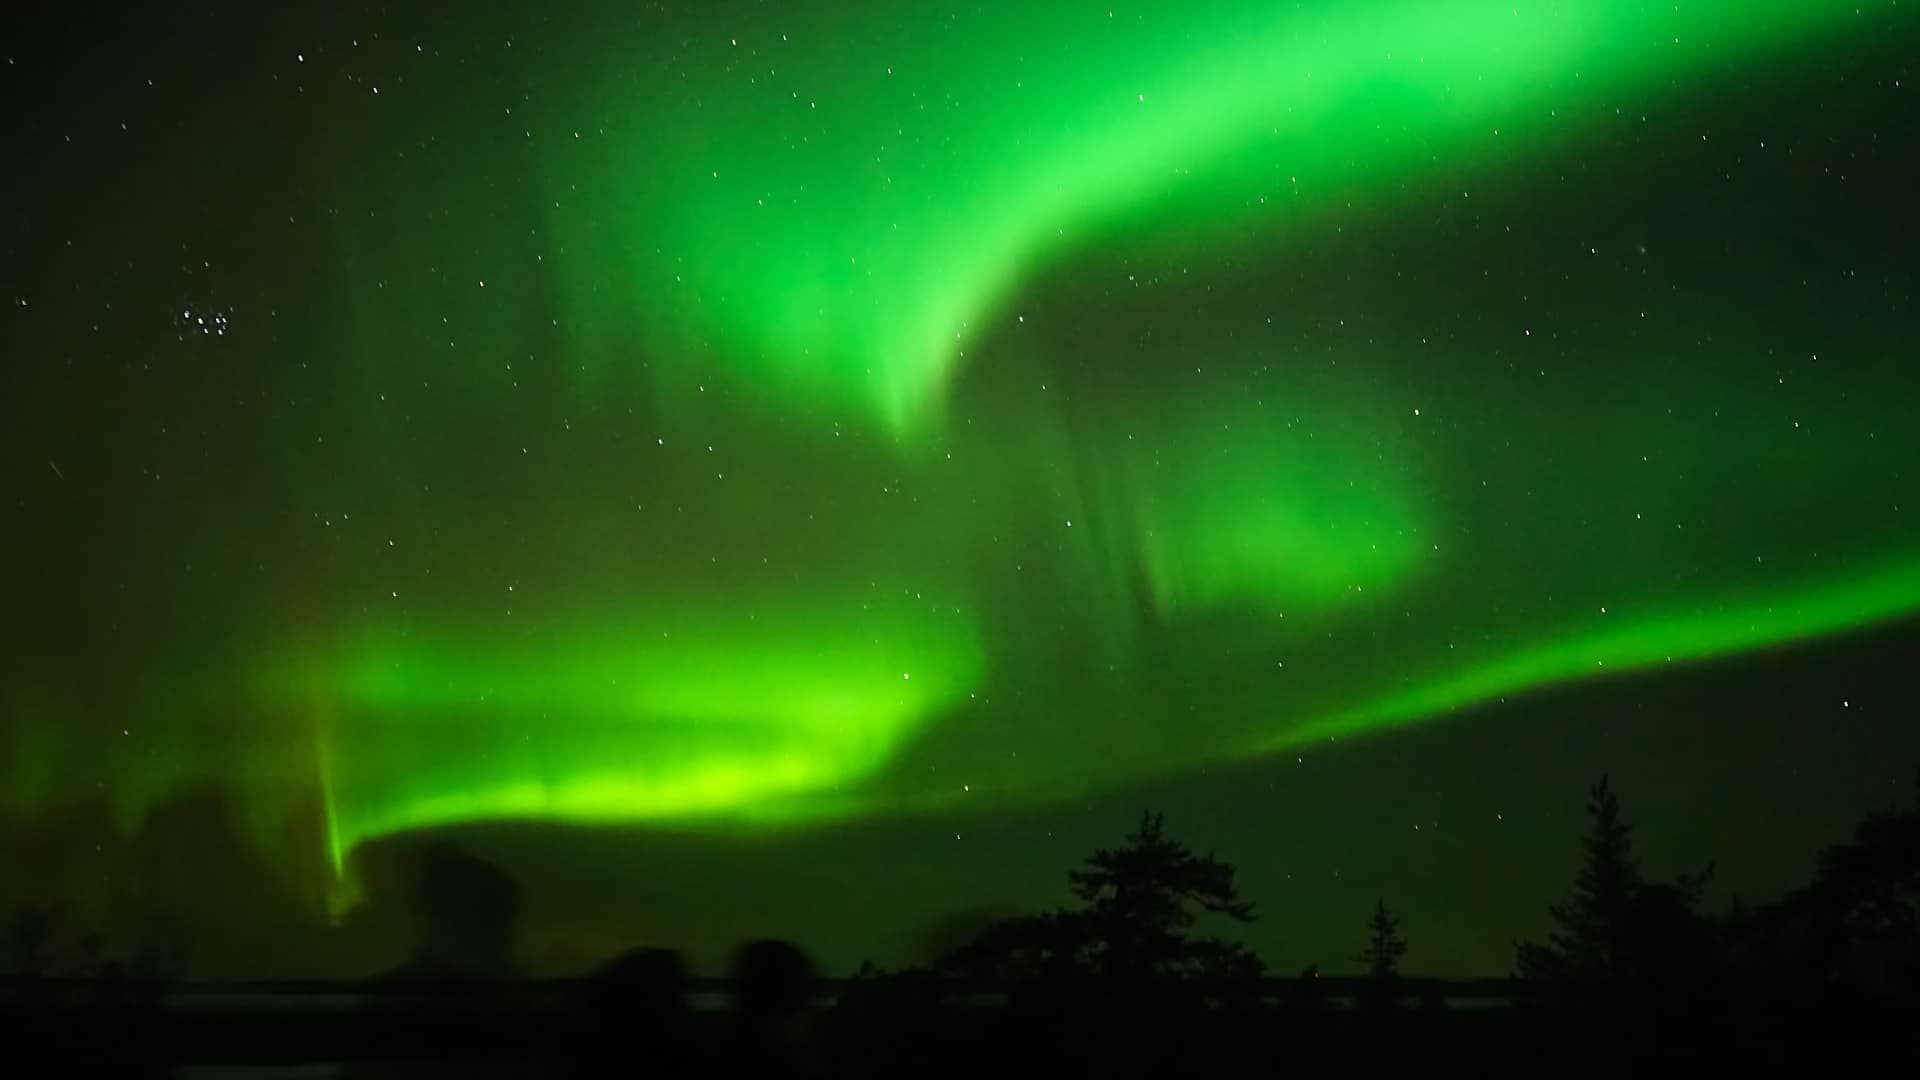 The Northern Lights seen from northern Finland